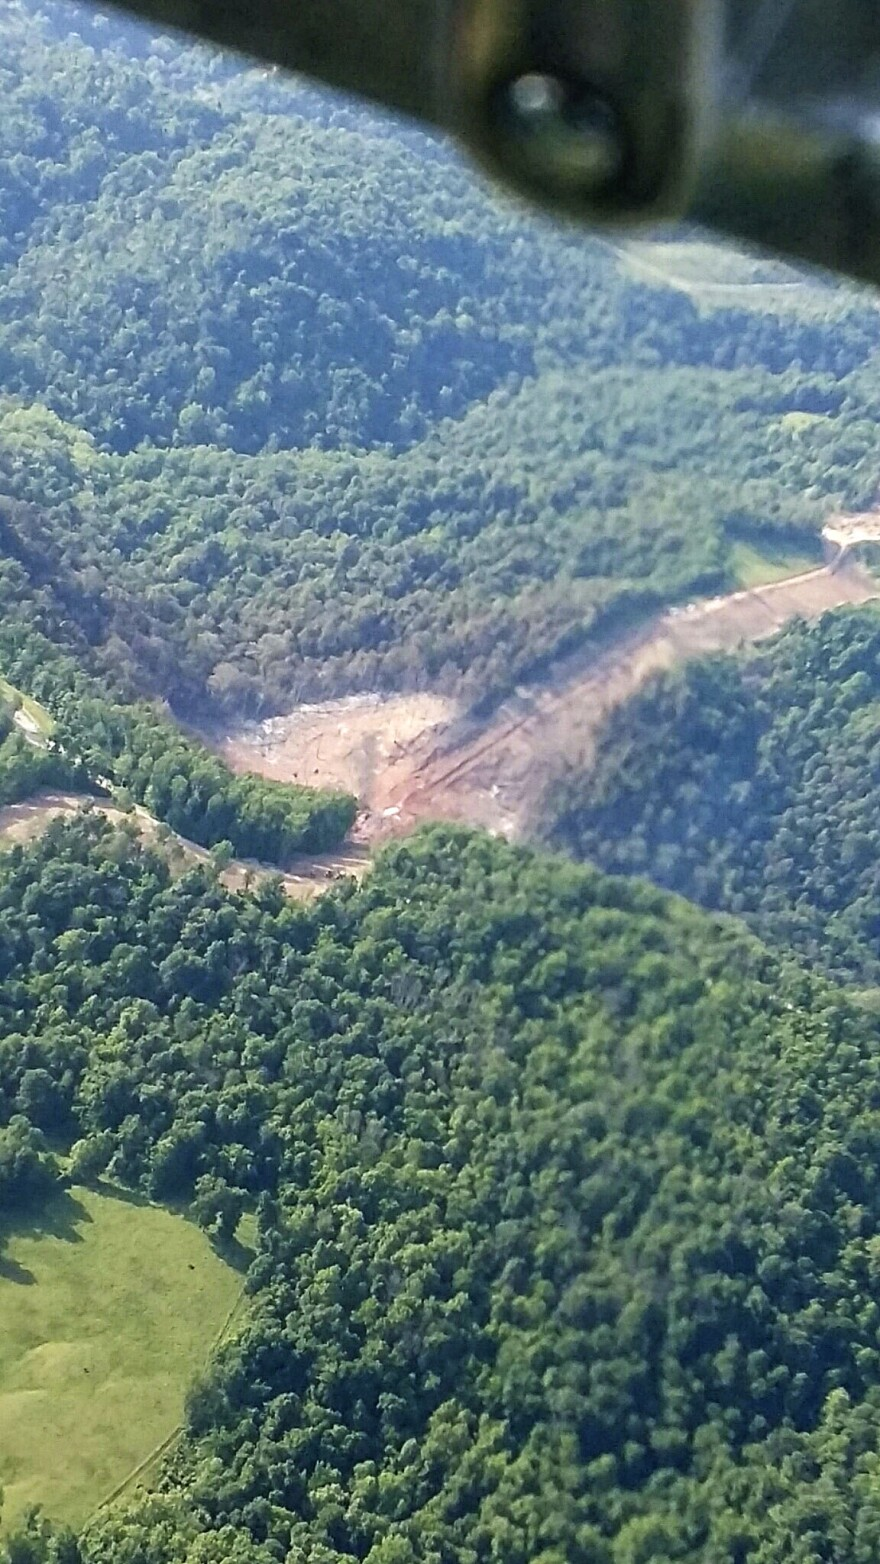 A crater in the earth following a Marshall County natural gas pipeline explosion as seen from the air.